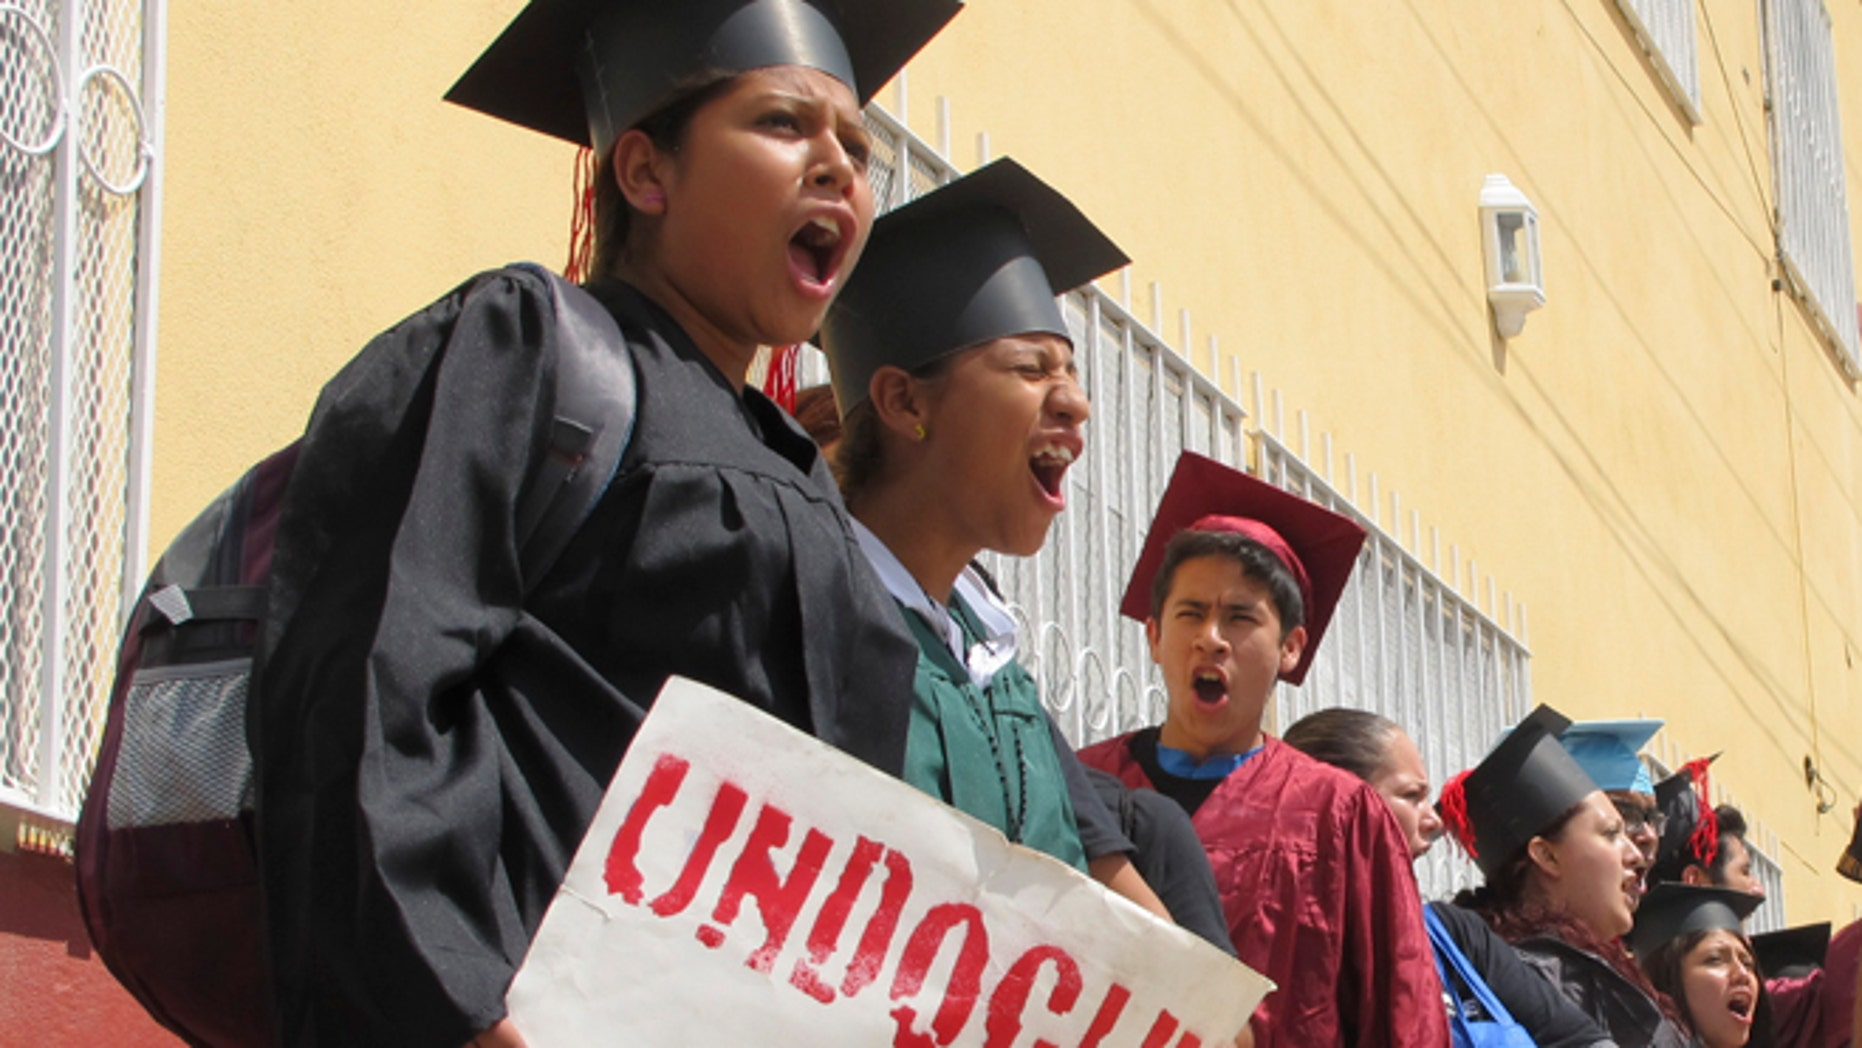 FILE - In this Sept. 20, 2013 file photo, wearing graduation-style caps and gowns, Mexican youth raised in the U.S, chant slogans outside a migrant shelter before crossing the international bridge from Nuevo Laredo, Mexico. A lawyer who traveled to the Texas-Mexico border with the 34 immigrants protesting U.S. immigration policies says 25 of the 26 remaining in federal custody have completed another step in their requests for asylum. (AP Photo/Christopher Sherman, File)